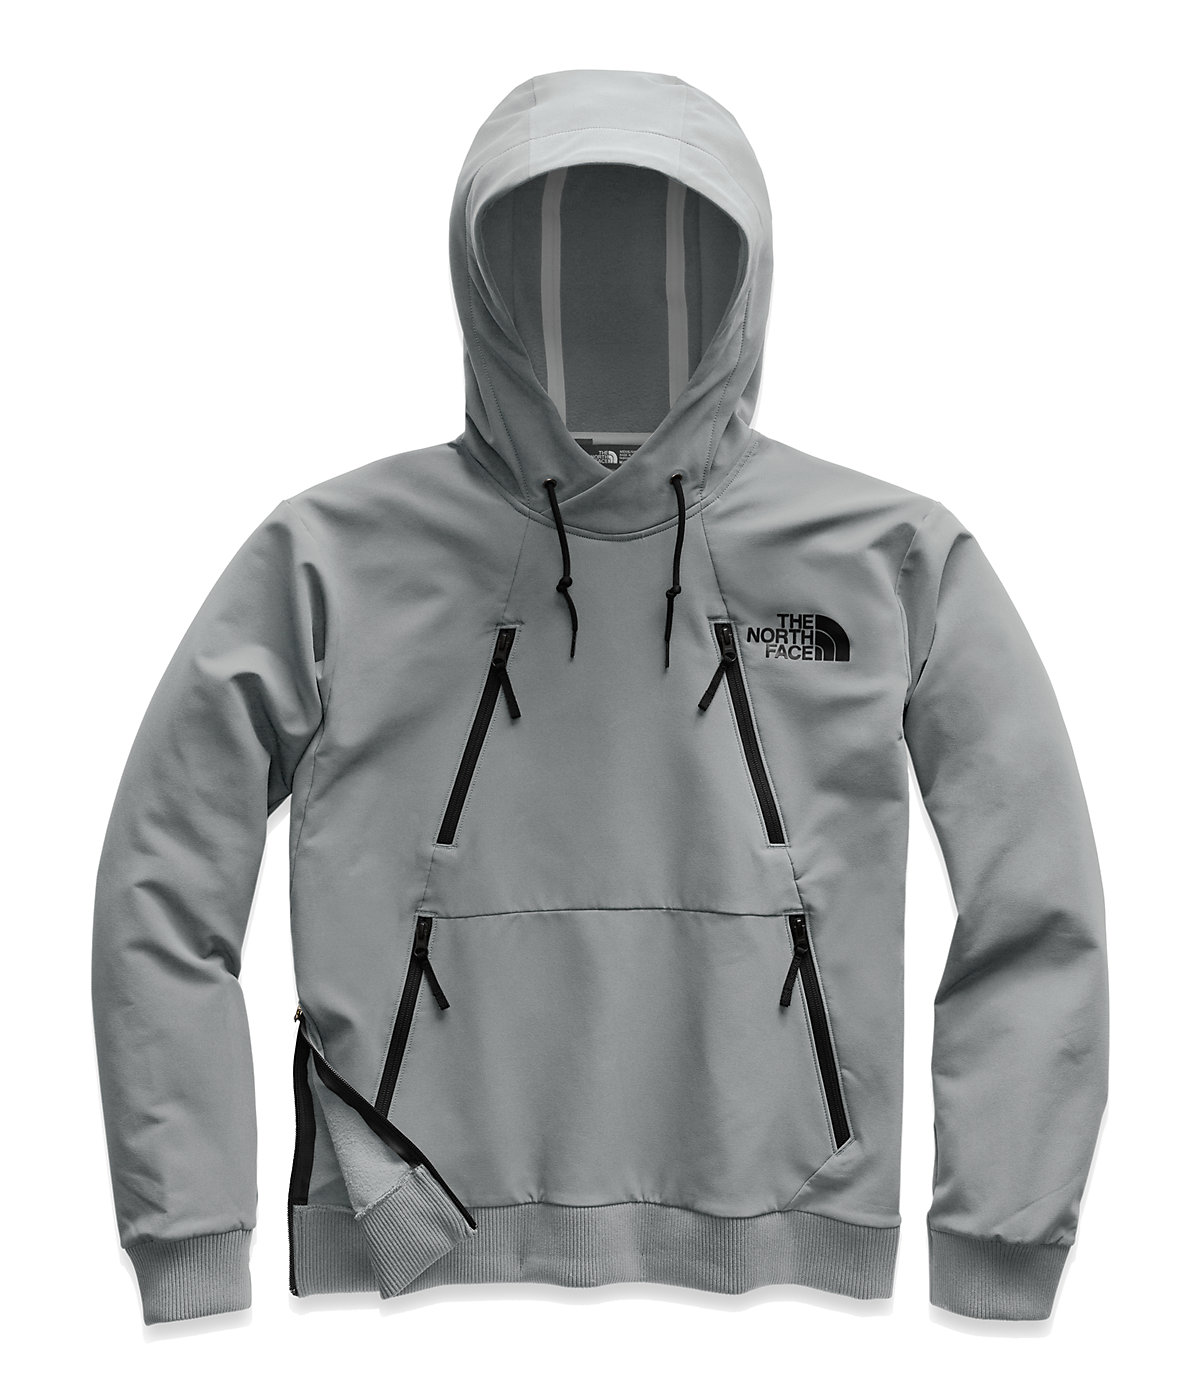 0f66e9b4e7d92e The North Face Men's Tekno Pullover Hoodie in 2019 | Products ...